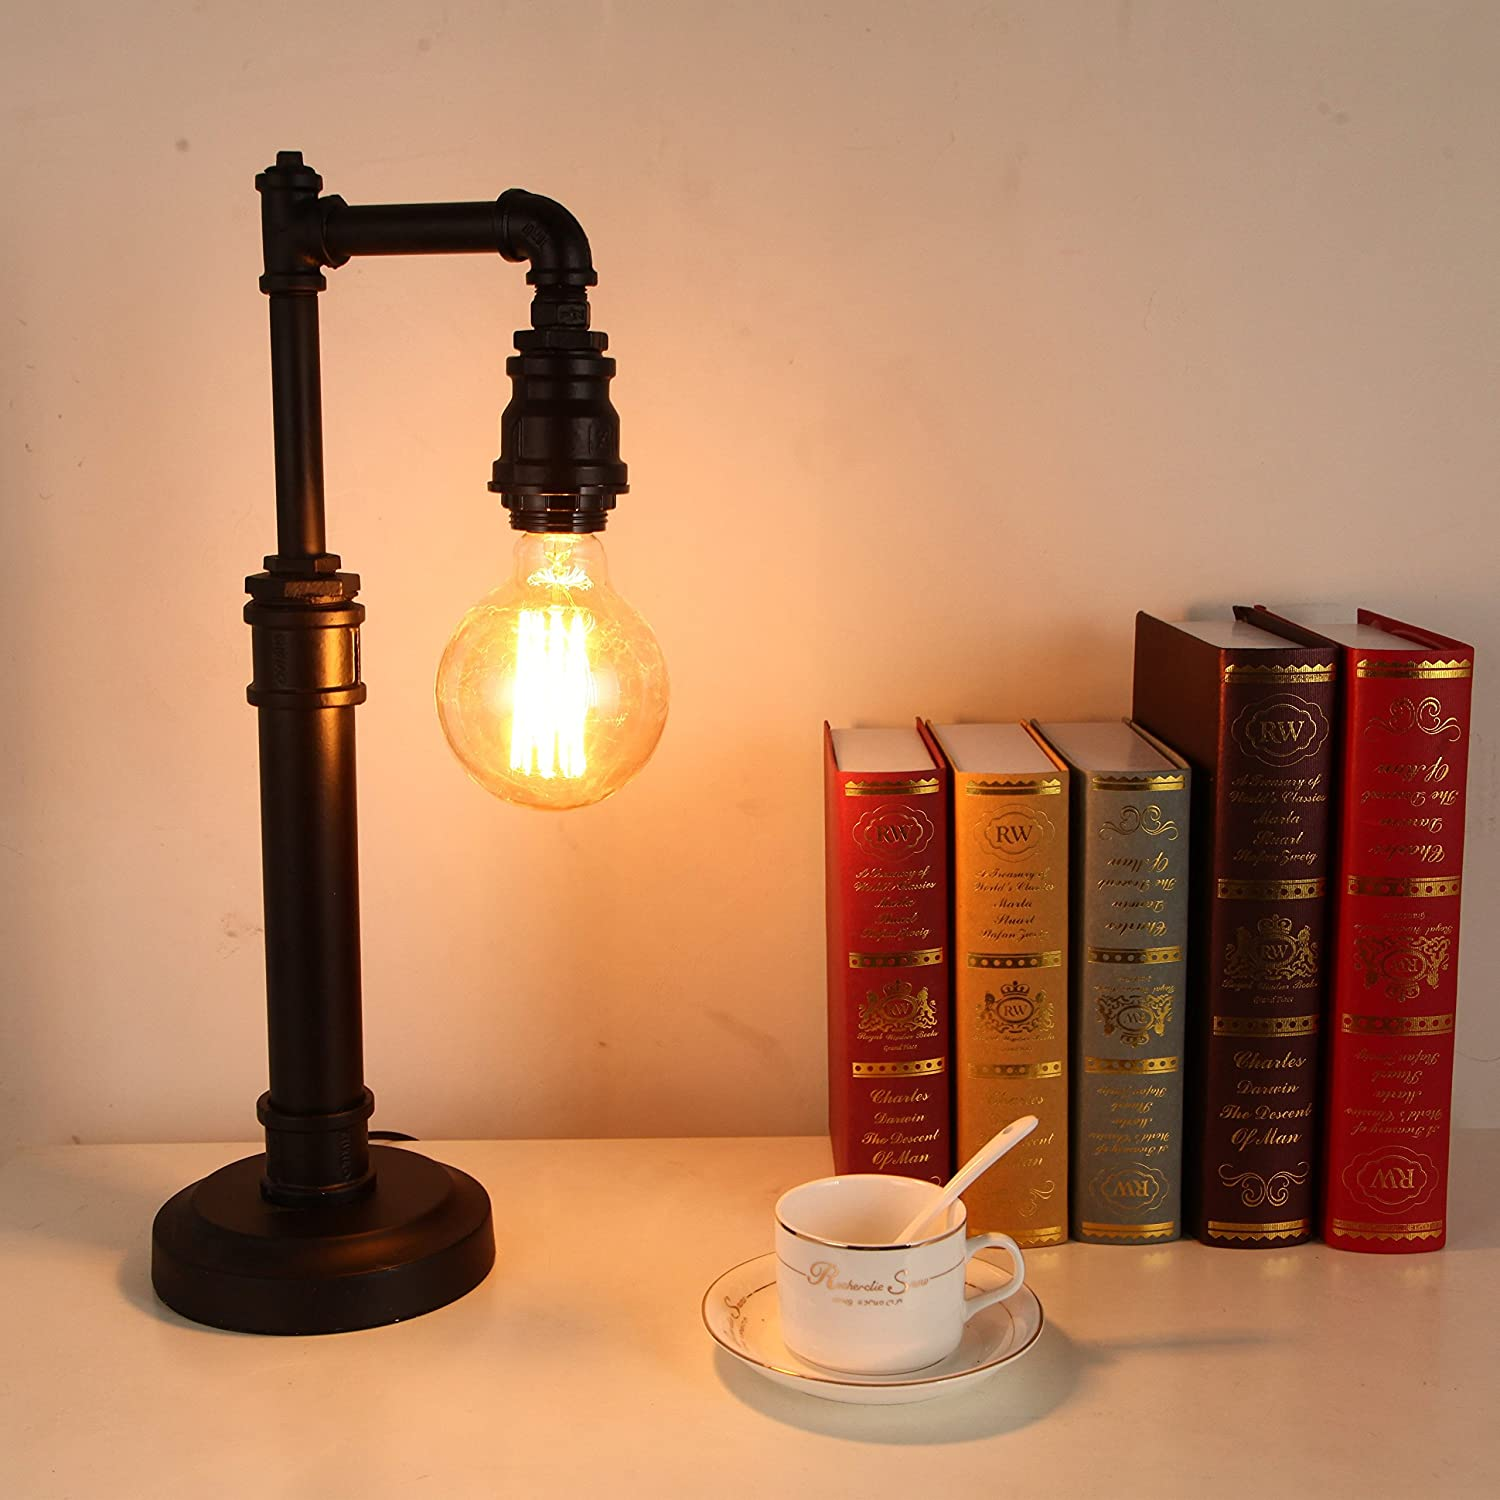 steampunk lighting.  lighting onepre vintage industrial steampunk table lamp 1 light water pipe rustic  bedside desk lamp amazoncouk lighting throughout